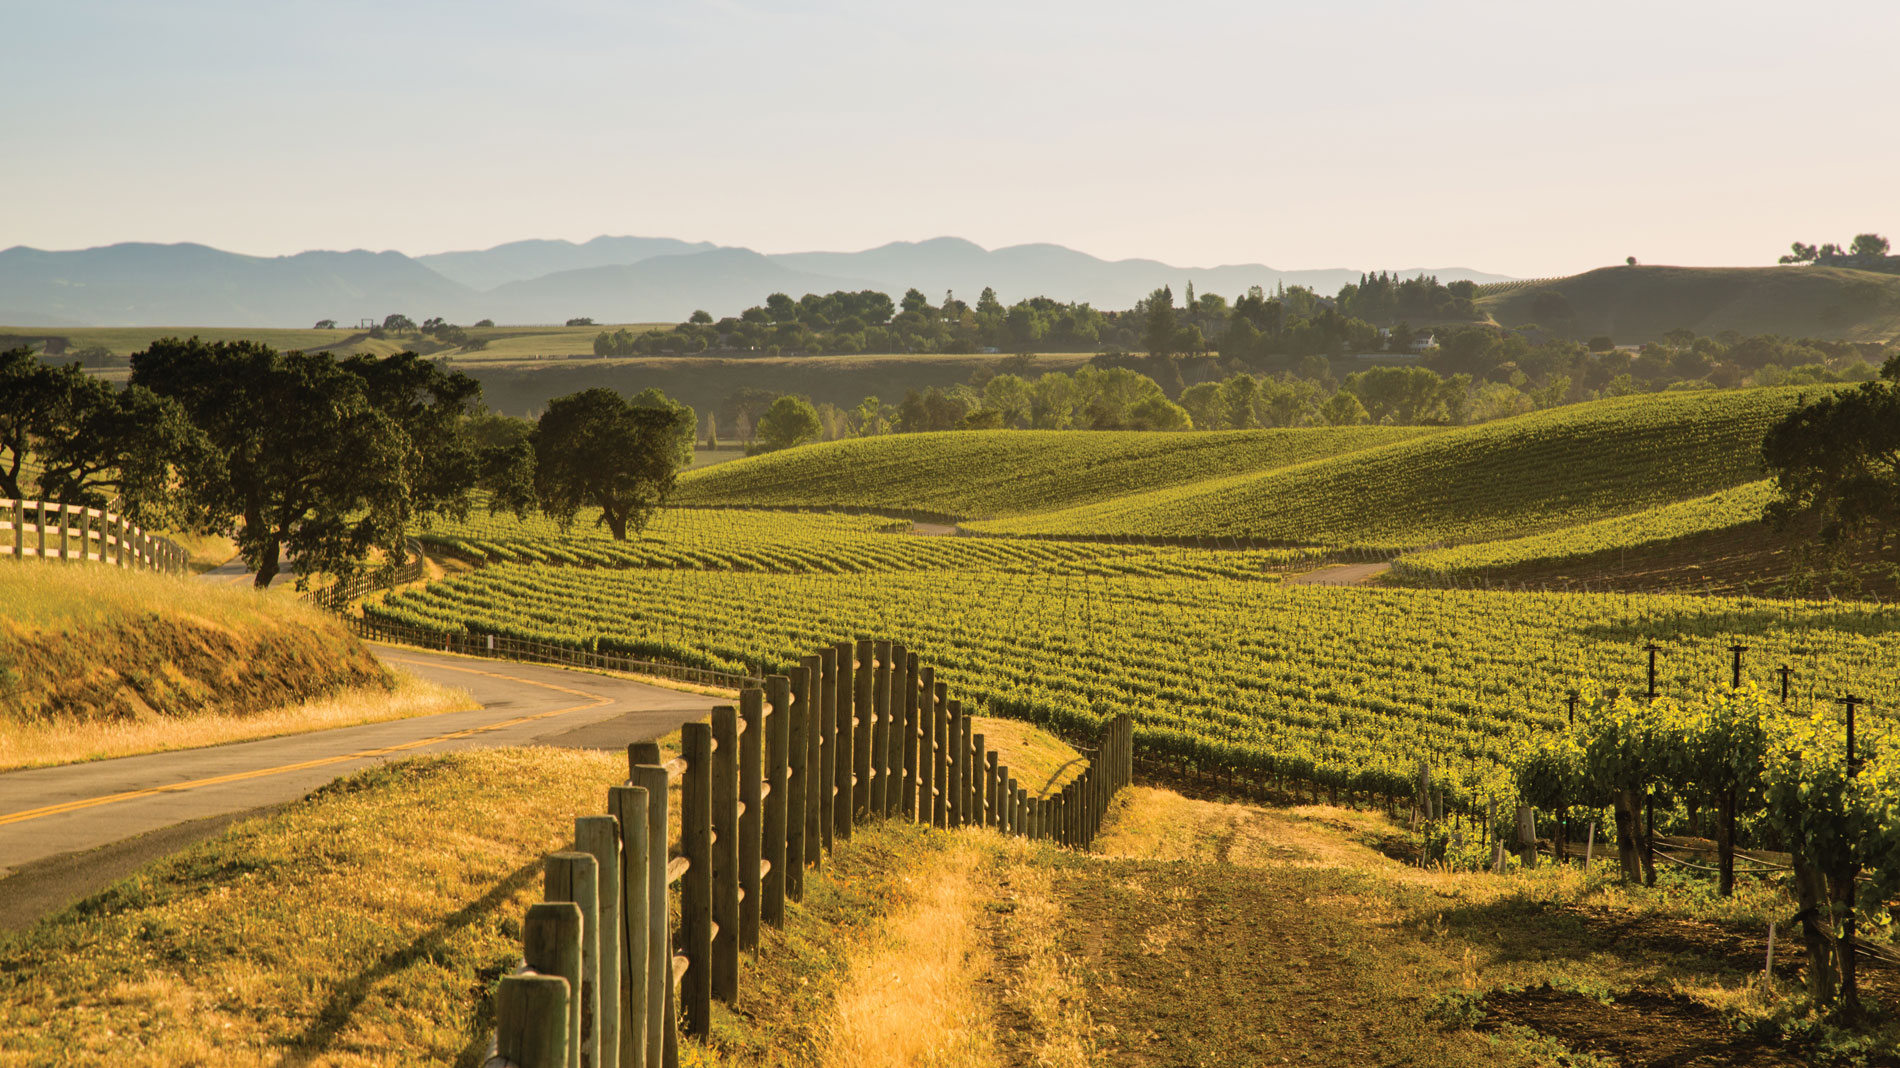 Washington, New York and Santa Barbara are three locations for great American wine.